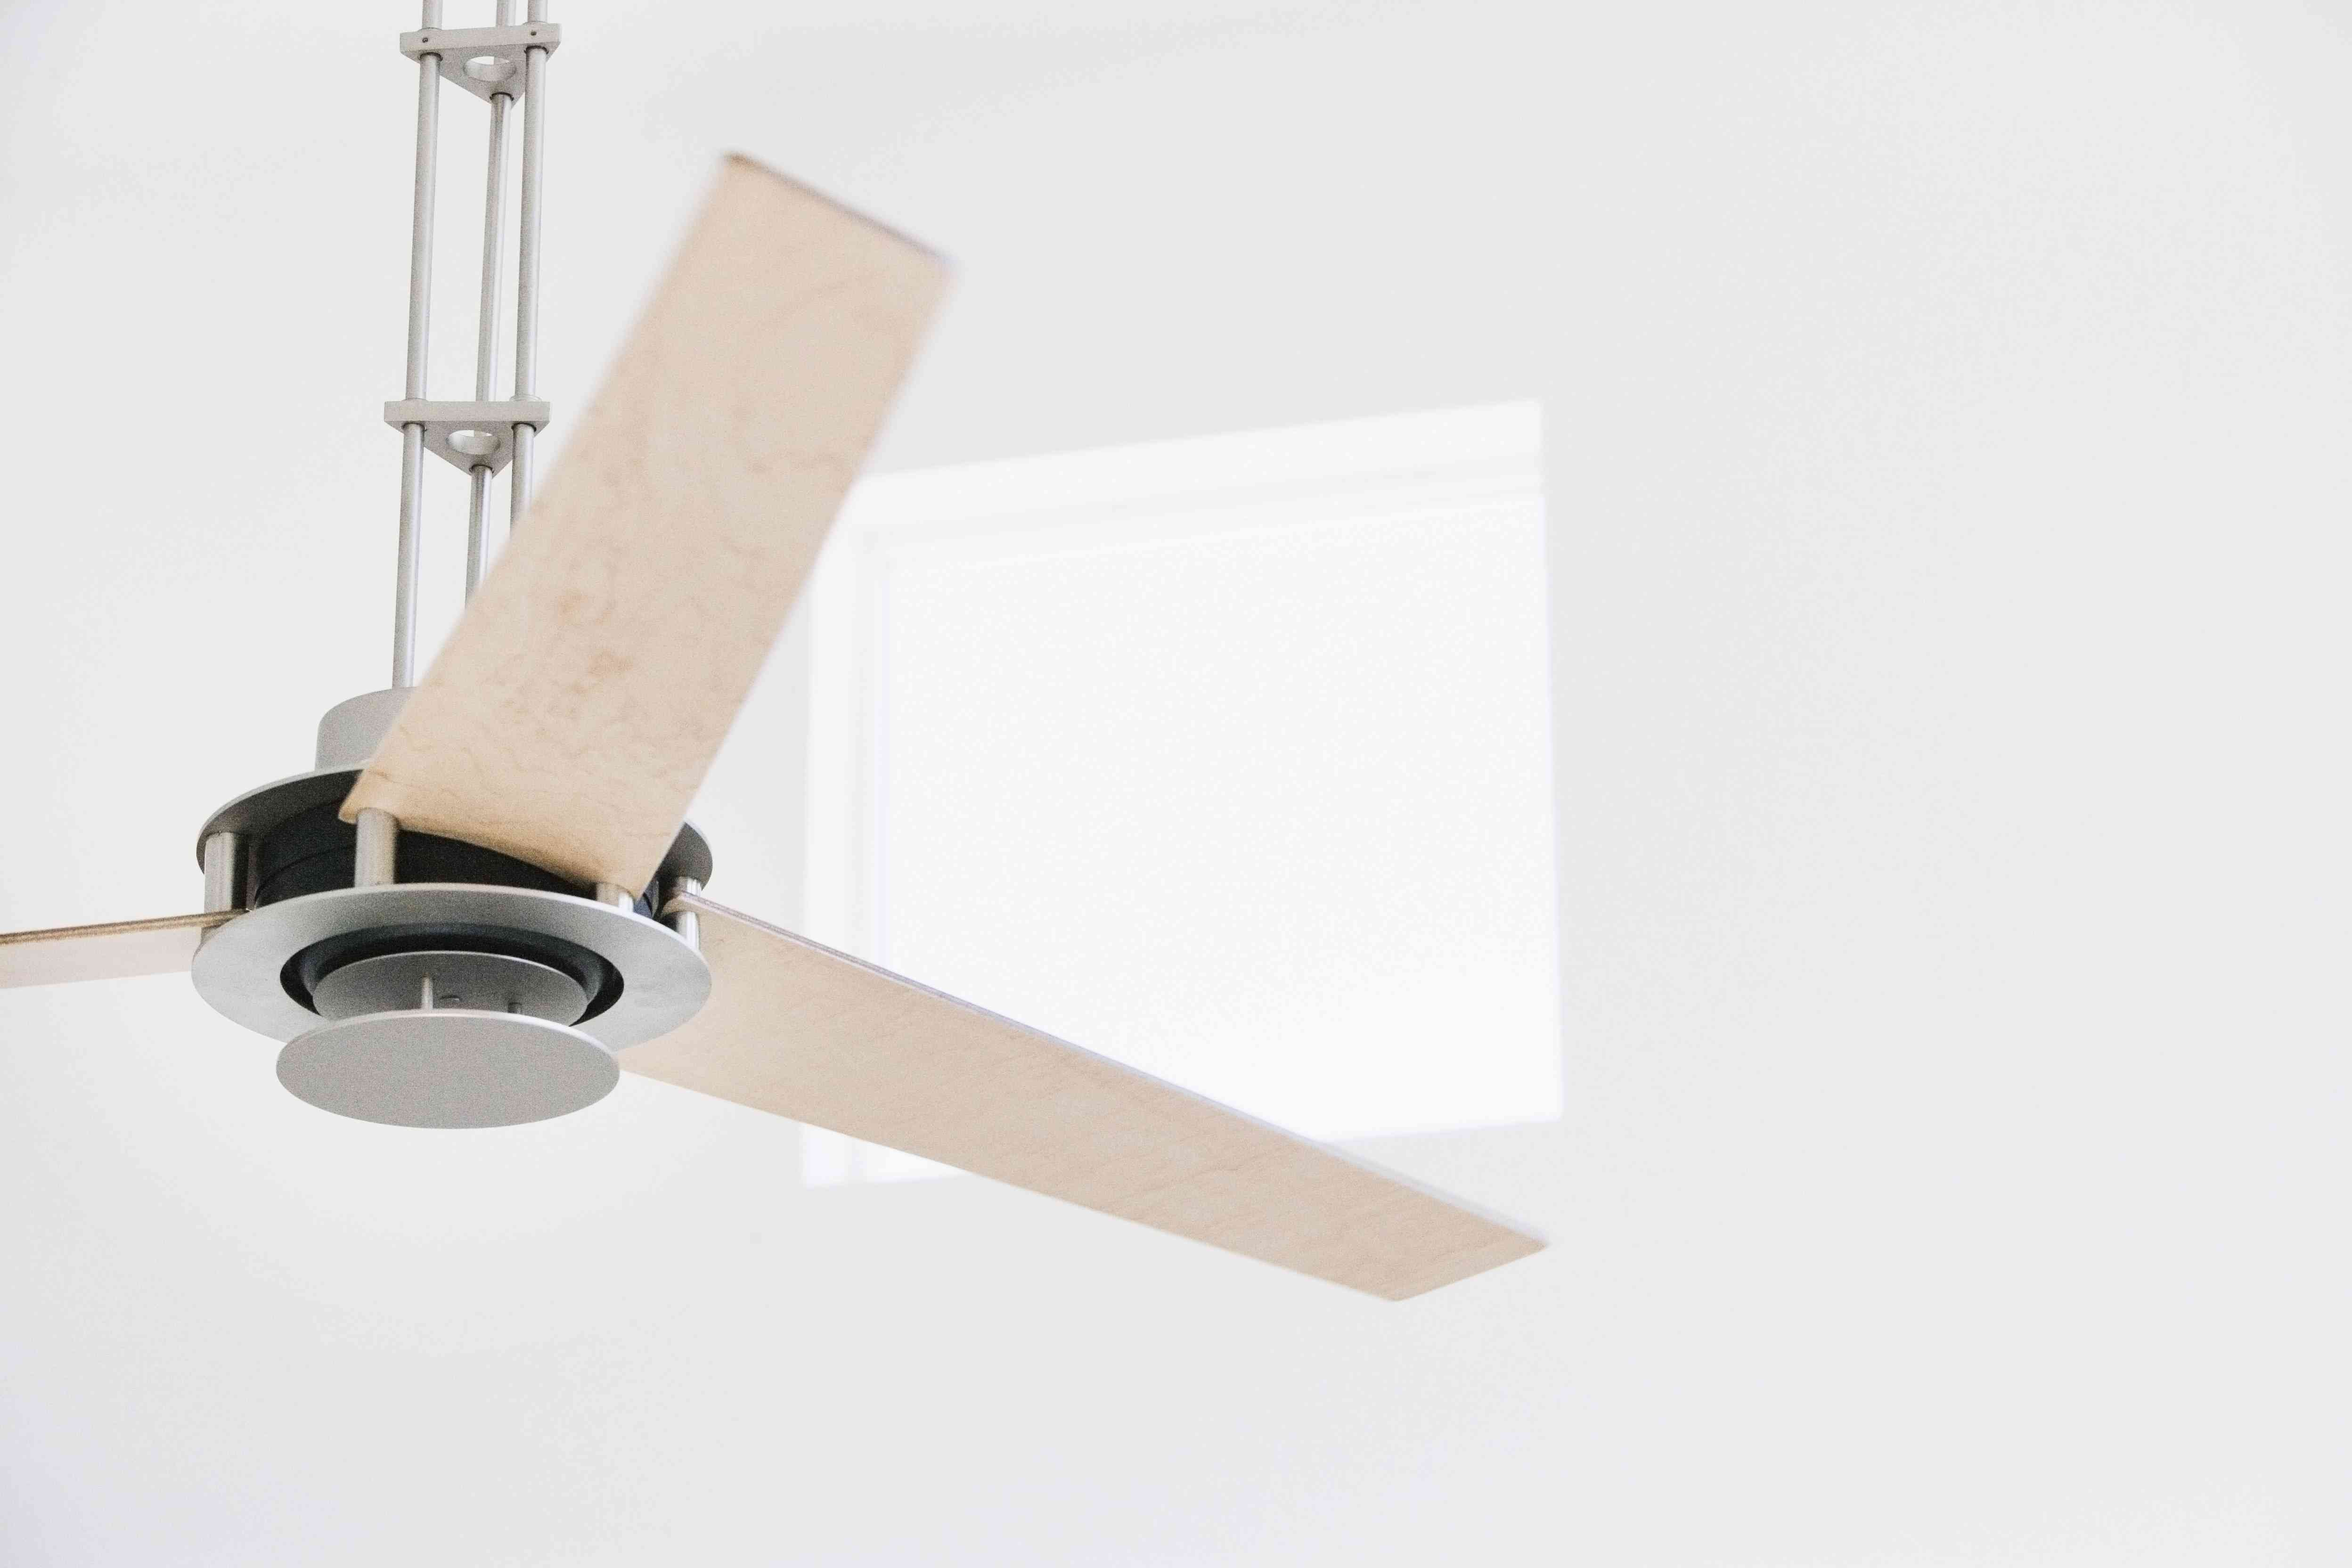 A metal and wood ceiling fan in a white room